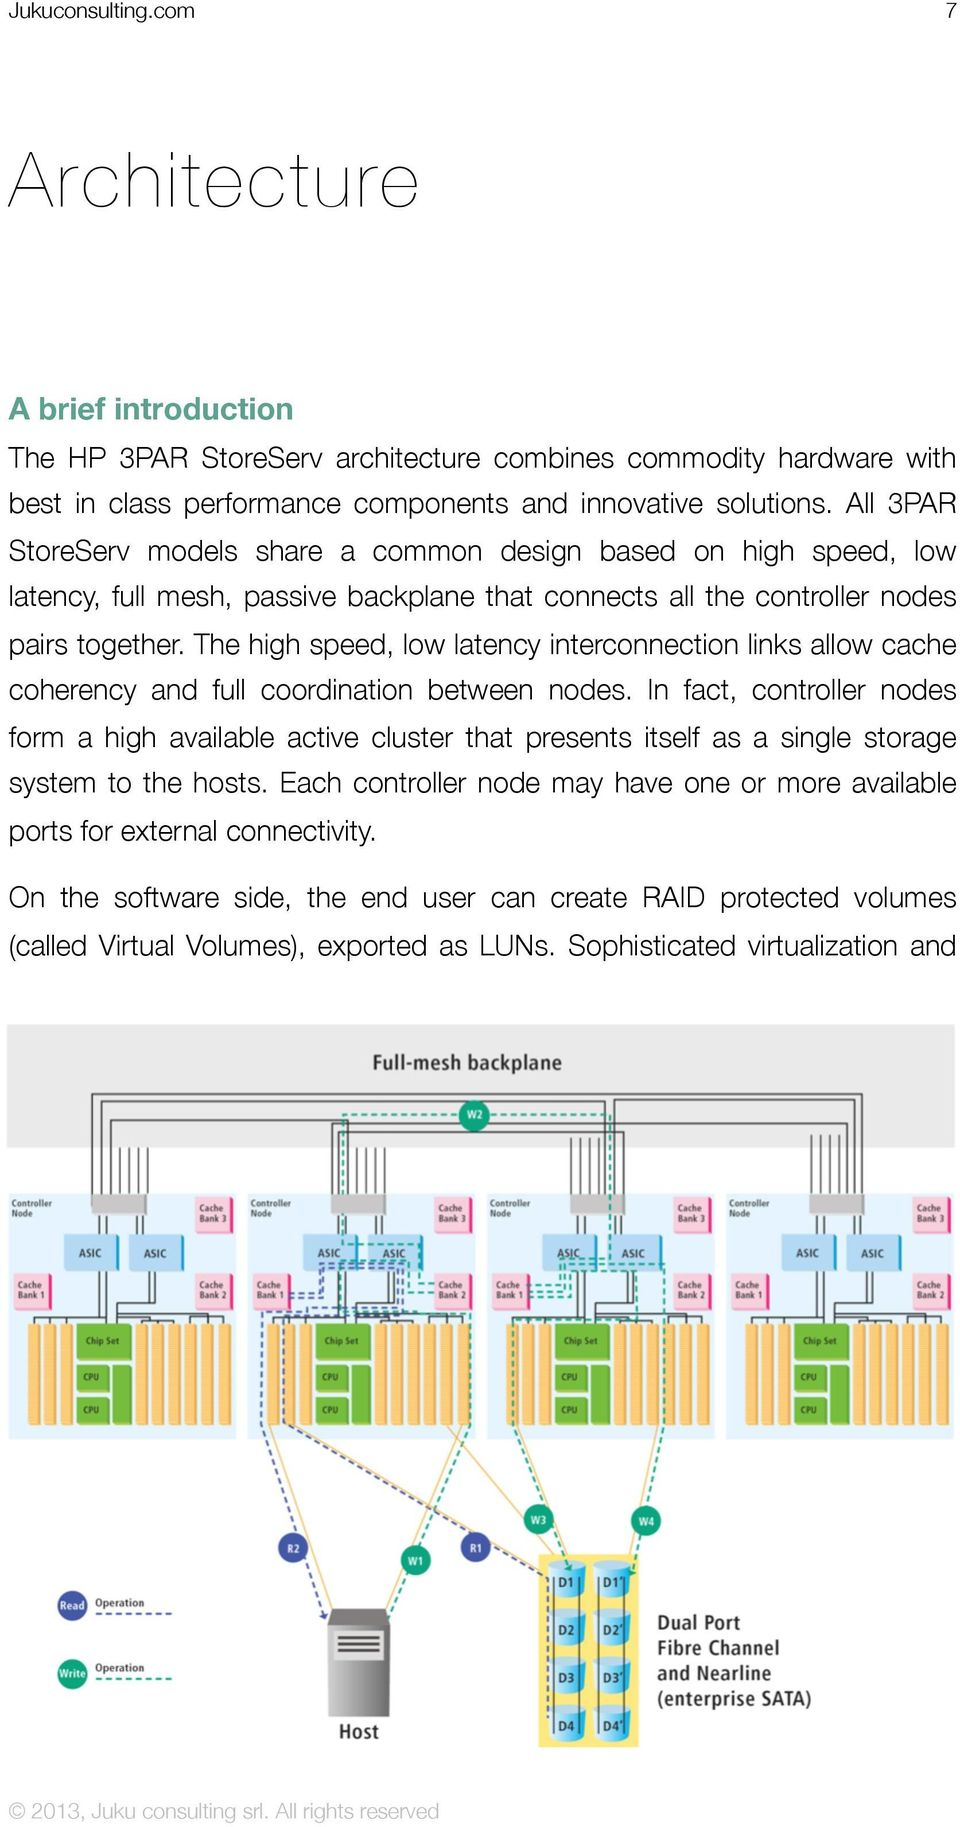 The high speed, low latency interconnection links allow cache coherency and full coordination between nodes.